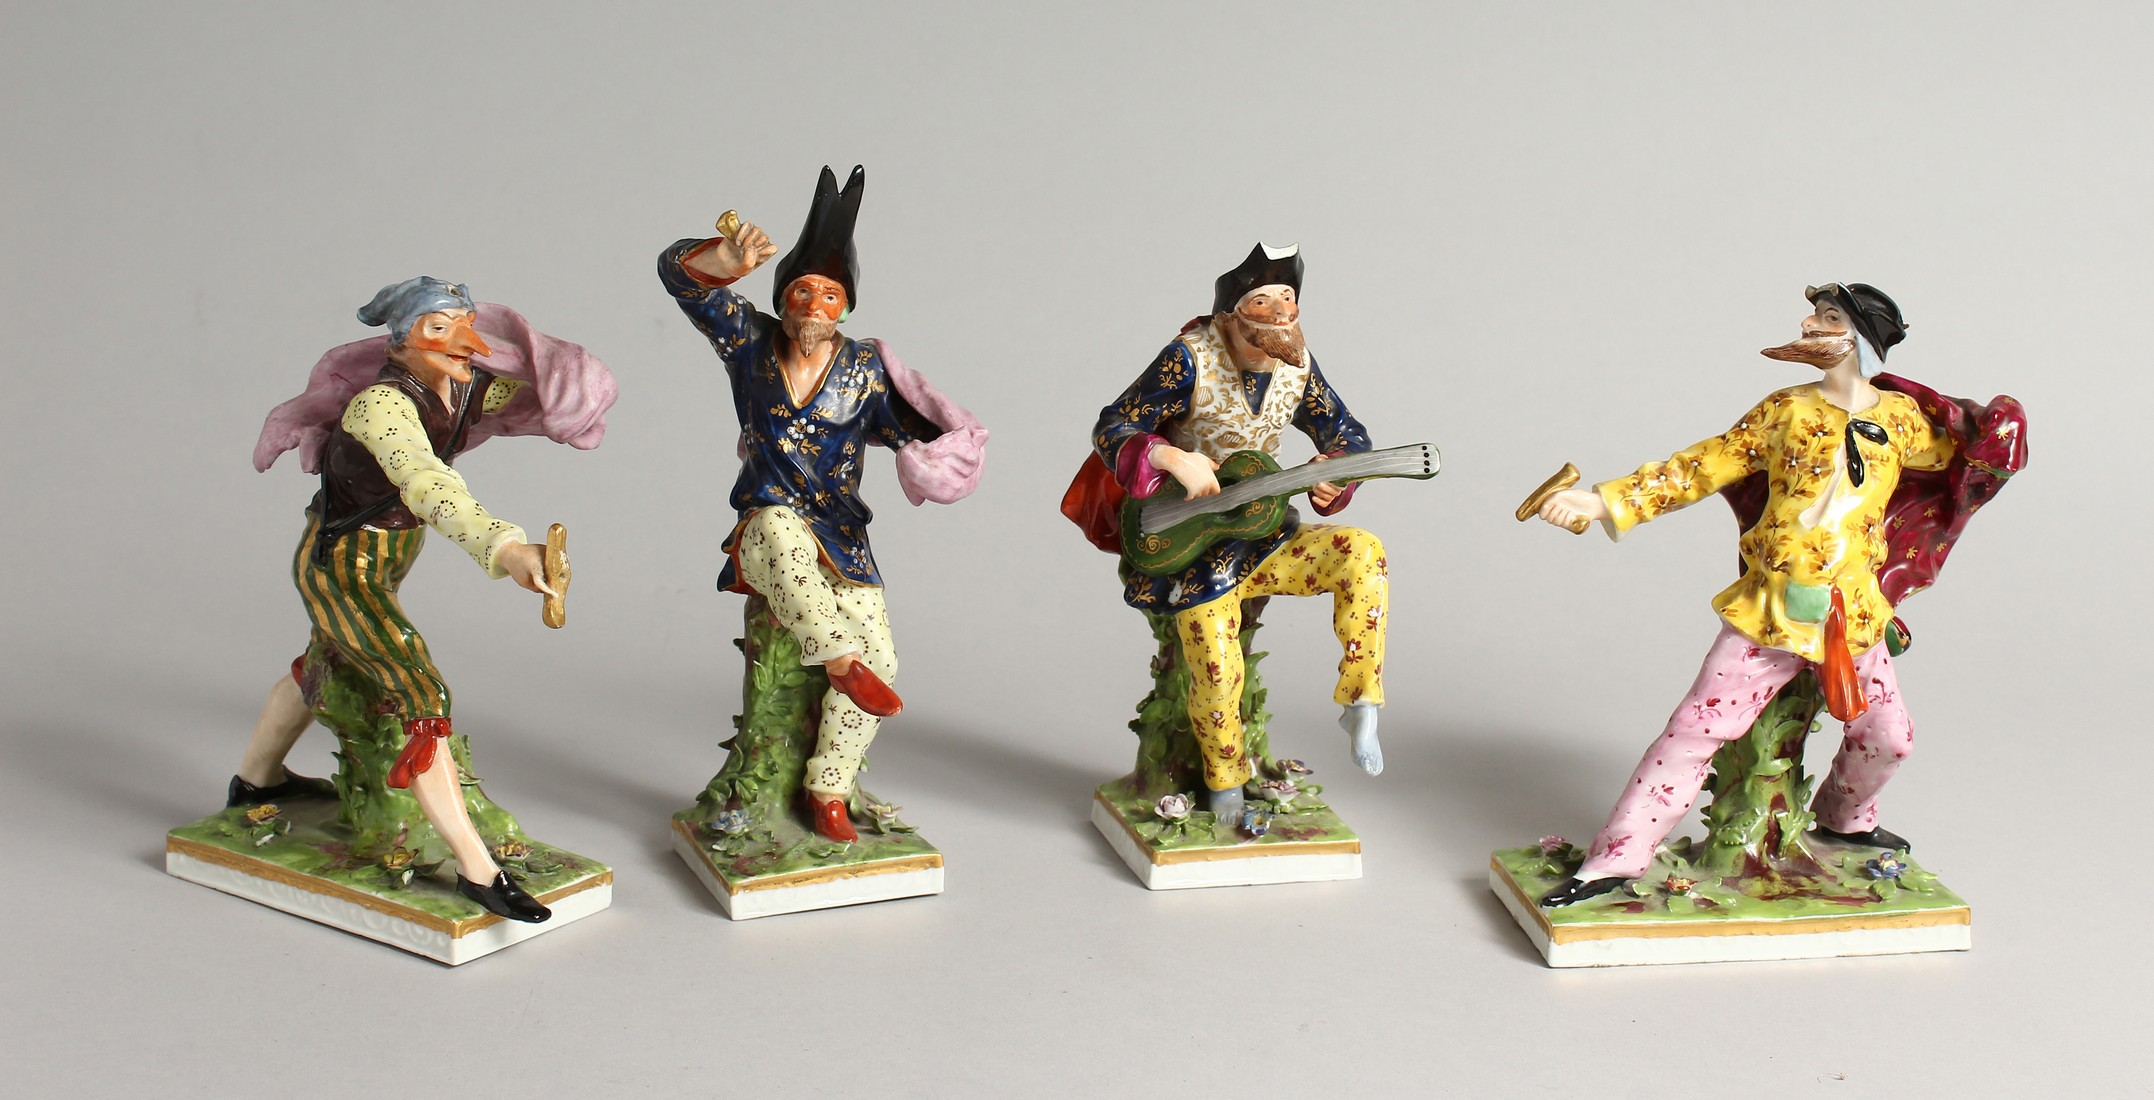 """A SET OF FOUR """"COMMEDIA DELL ARTE """" STYLE FIGURES, LATE 19TH CENTURY/EARLY 20TH CENTURY, possibly by"""